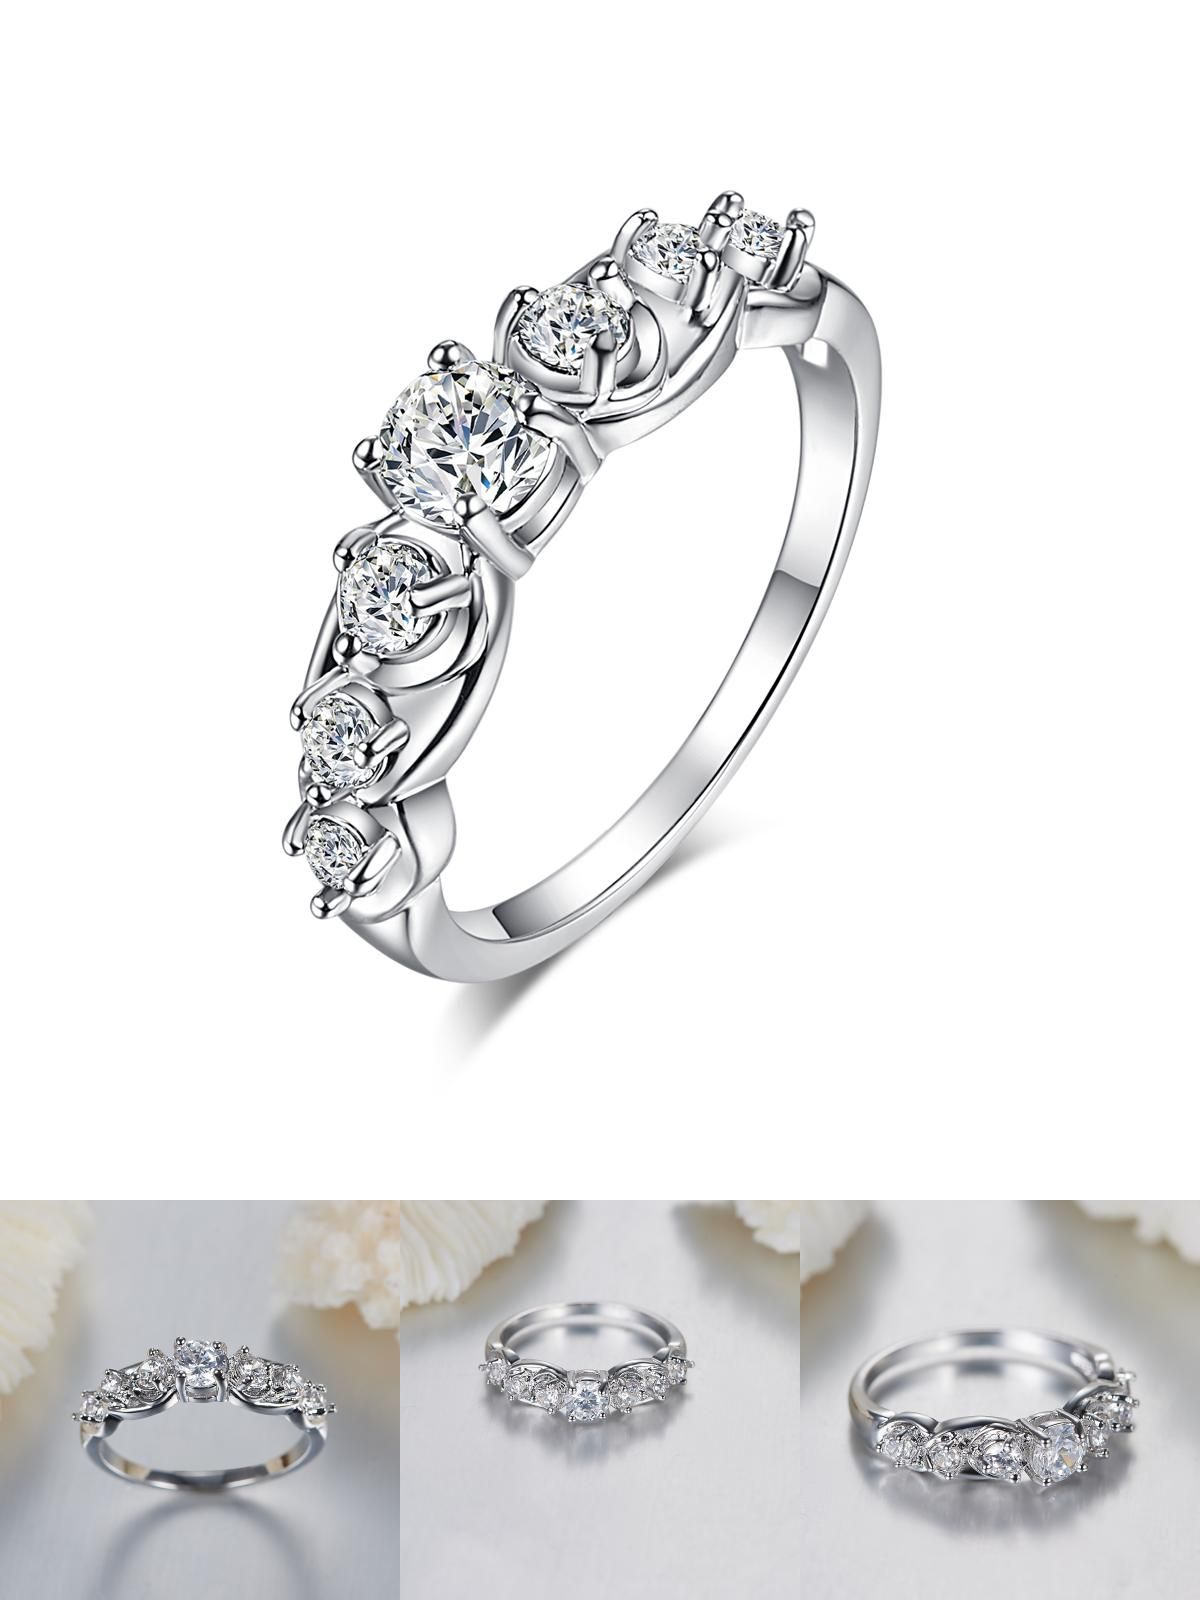 Discussion on this topic: How to Buy a Cubic Zirconia Ring, how-to-buy-a-cubic-zirconia-ring/